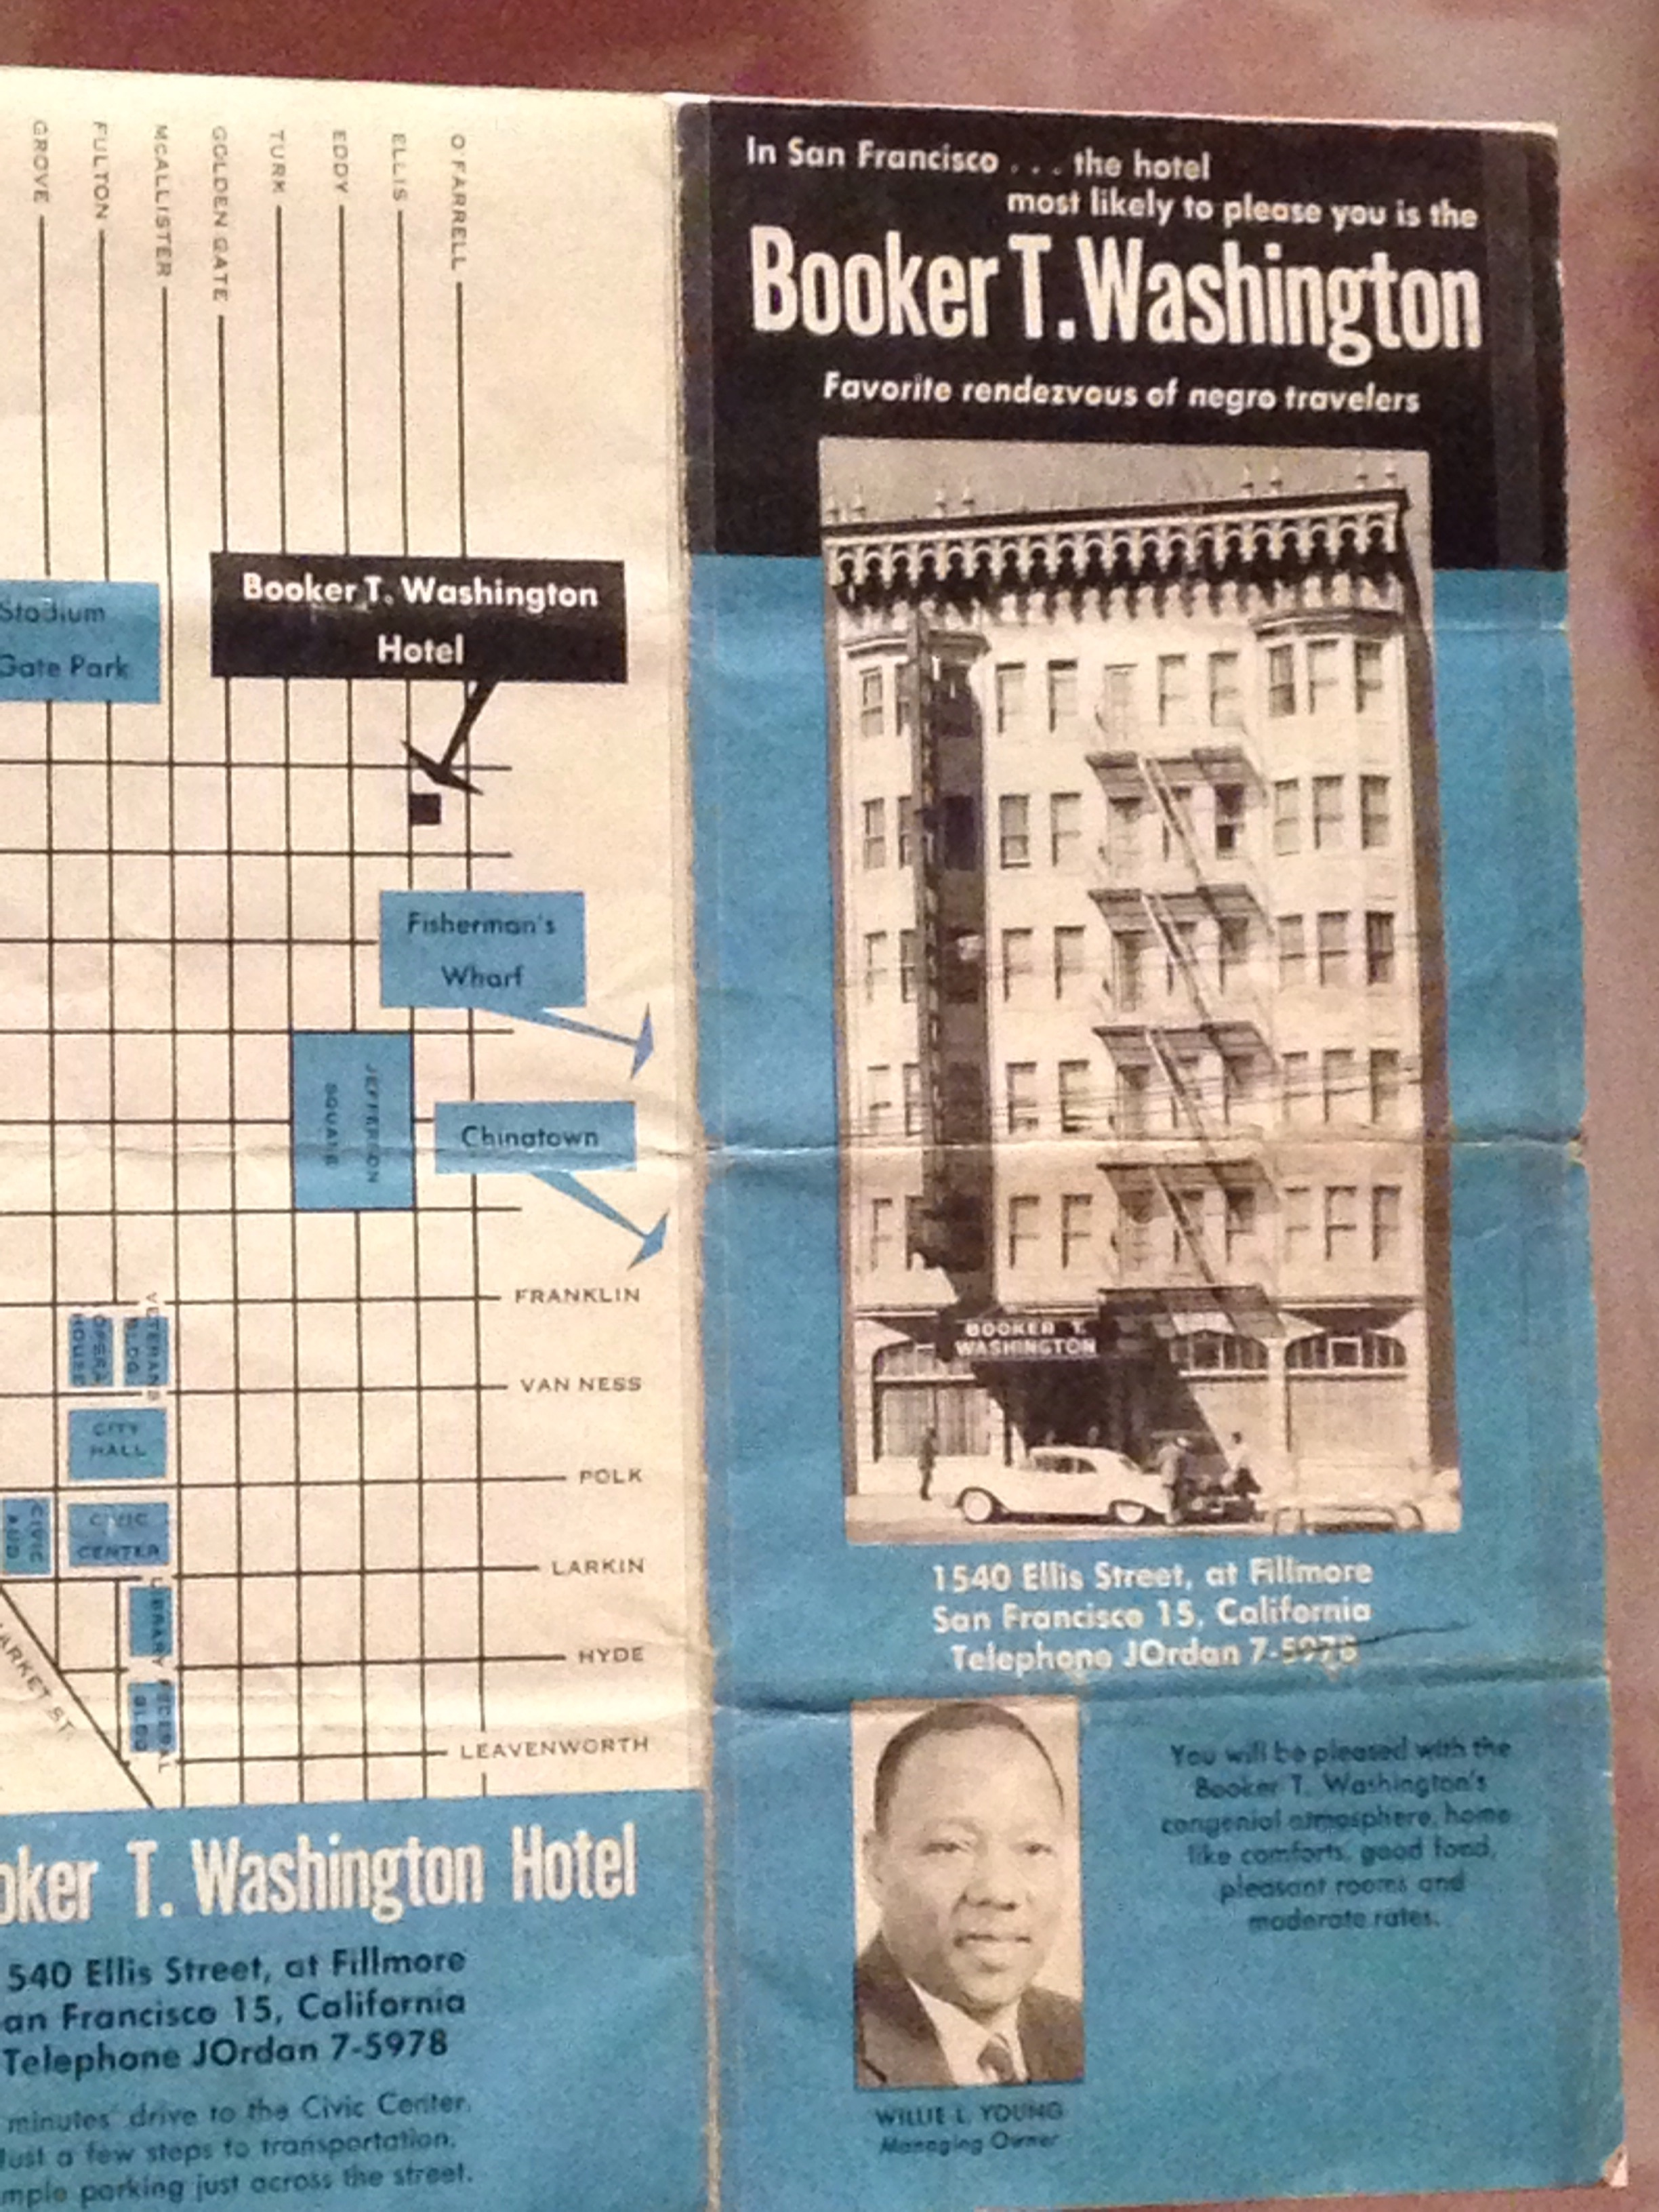 Hotel pamphlet, as seen in the B.B. King Museum, Indianola, Mississippi, June 8, 2017.